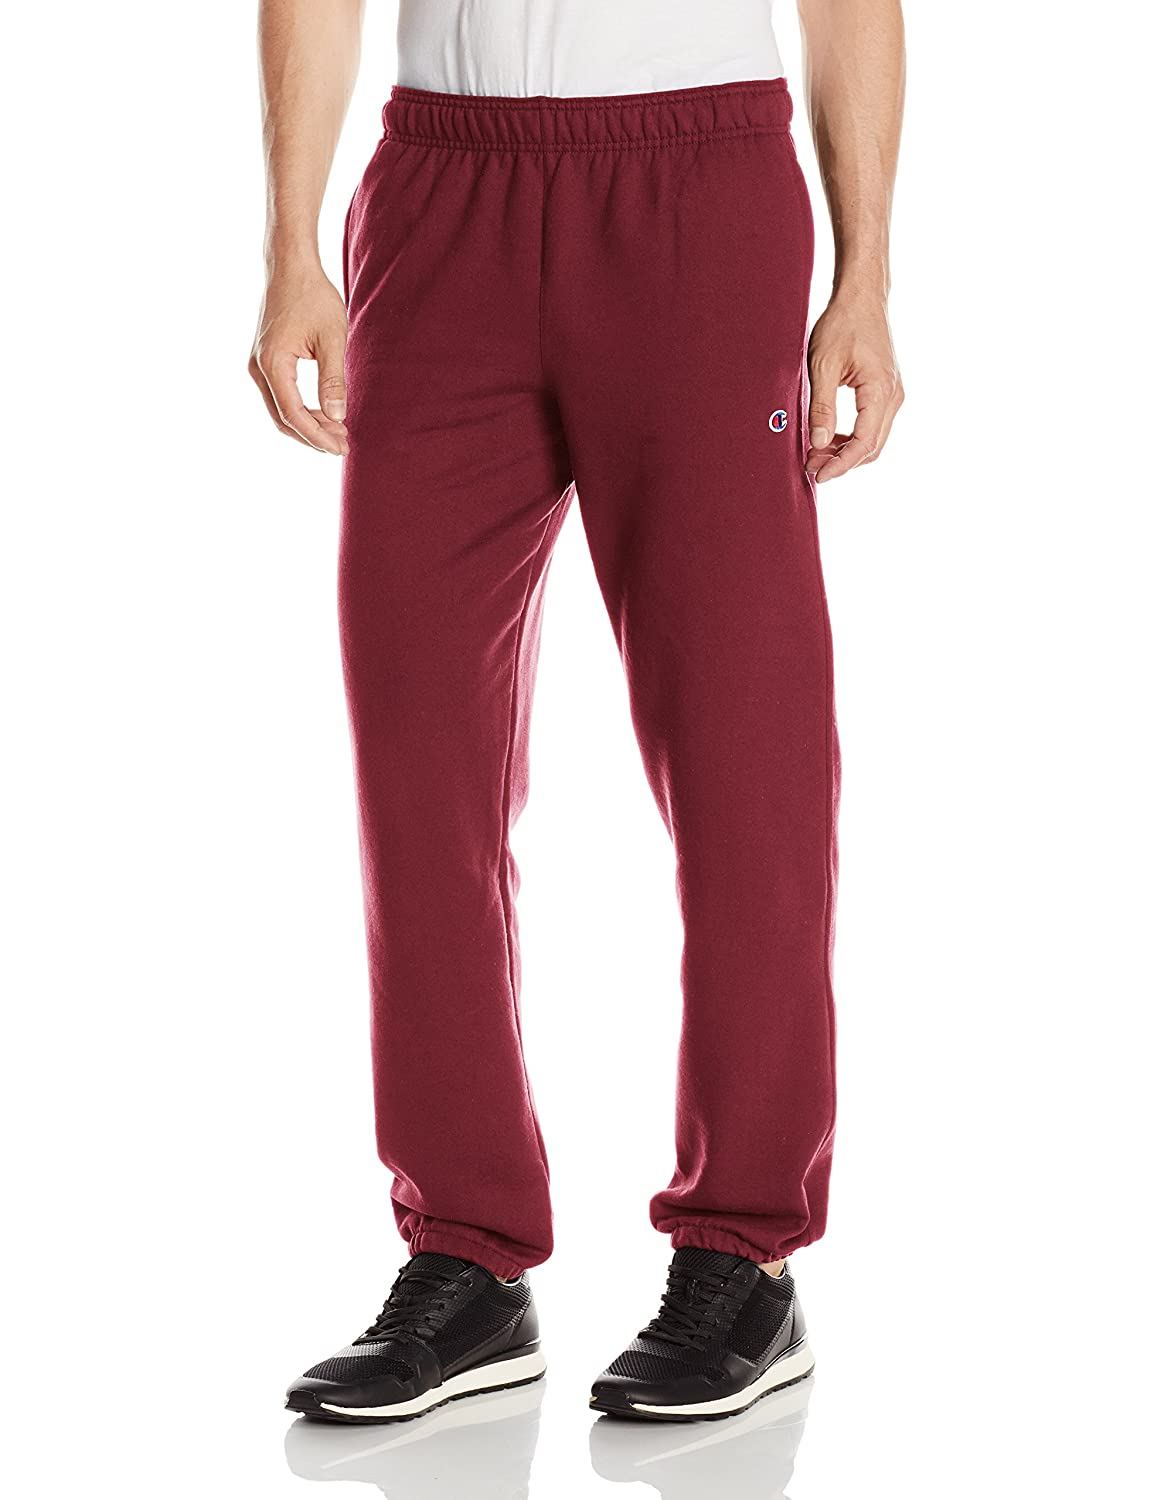 Champion Mens Standard Powerblend Relaxed Bottom Fleece Pant Champion Men' s Athletic P0894